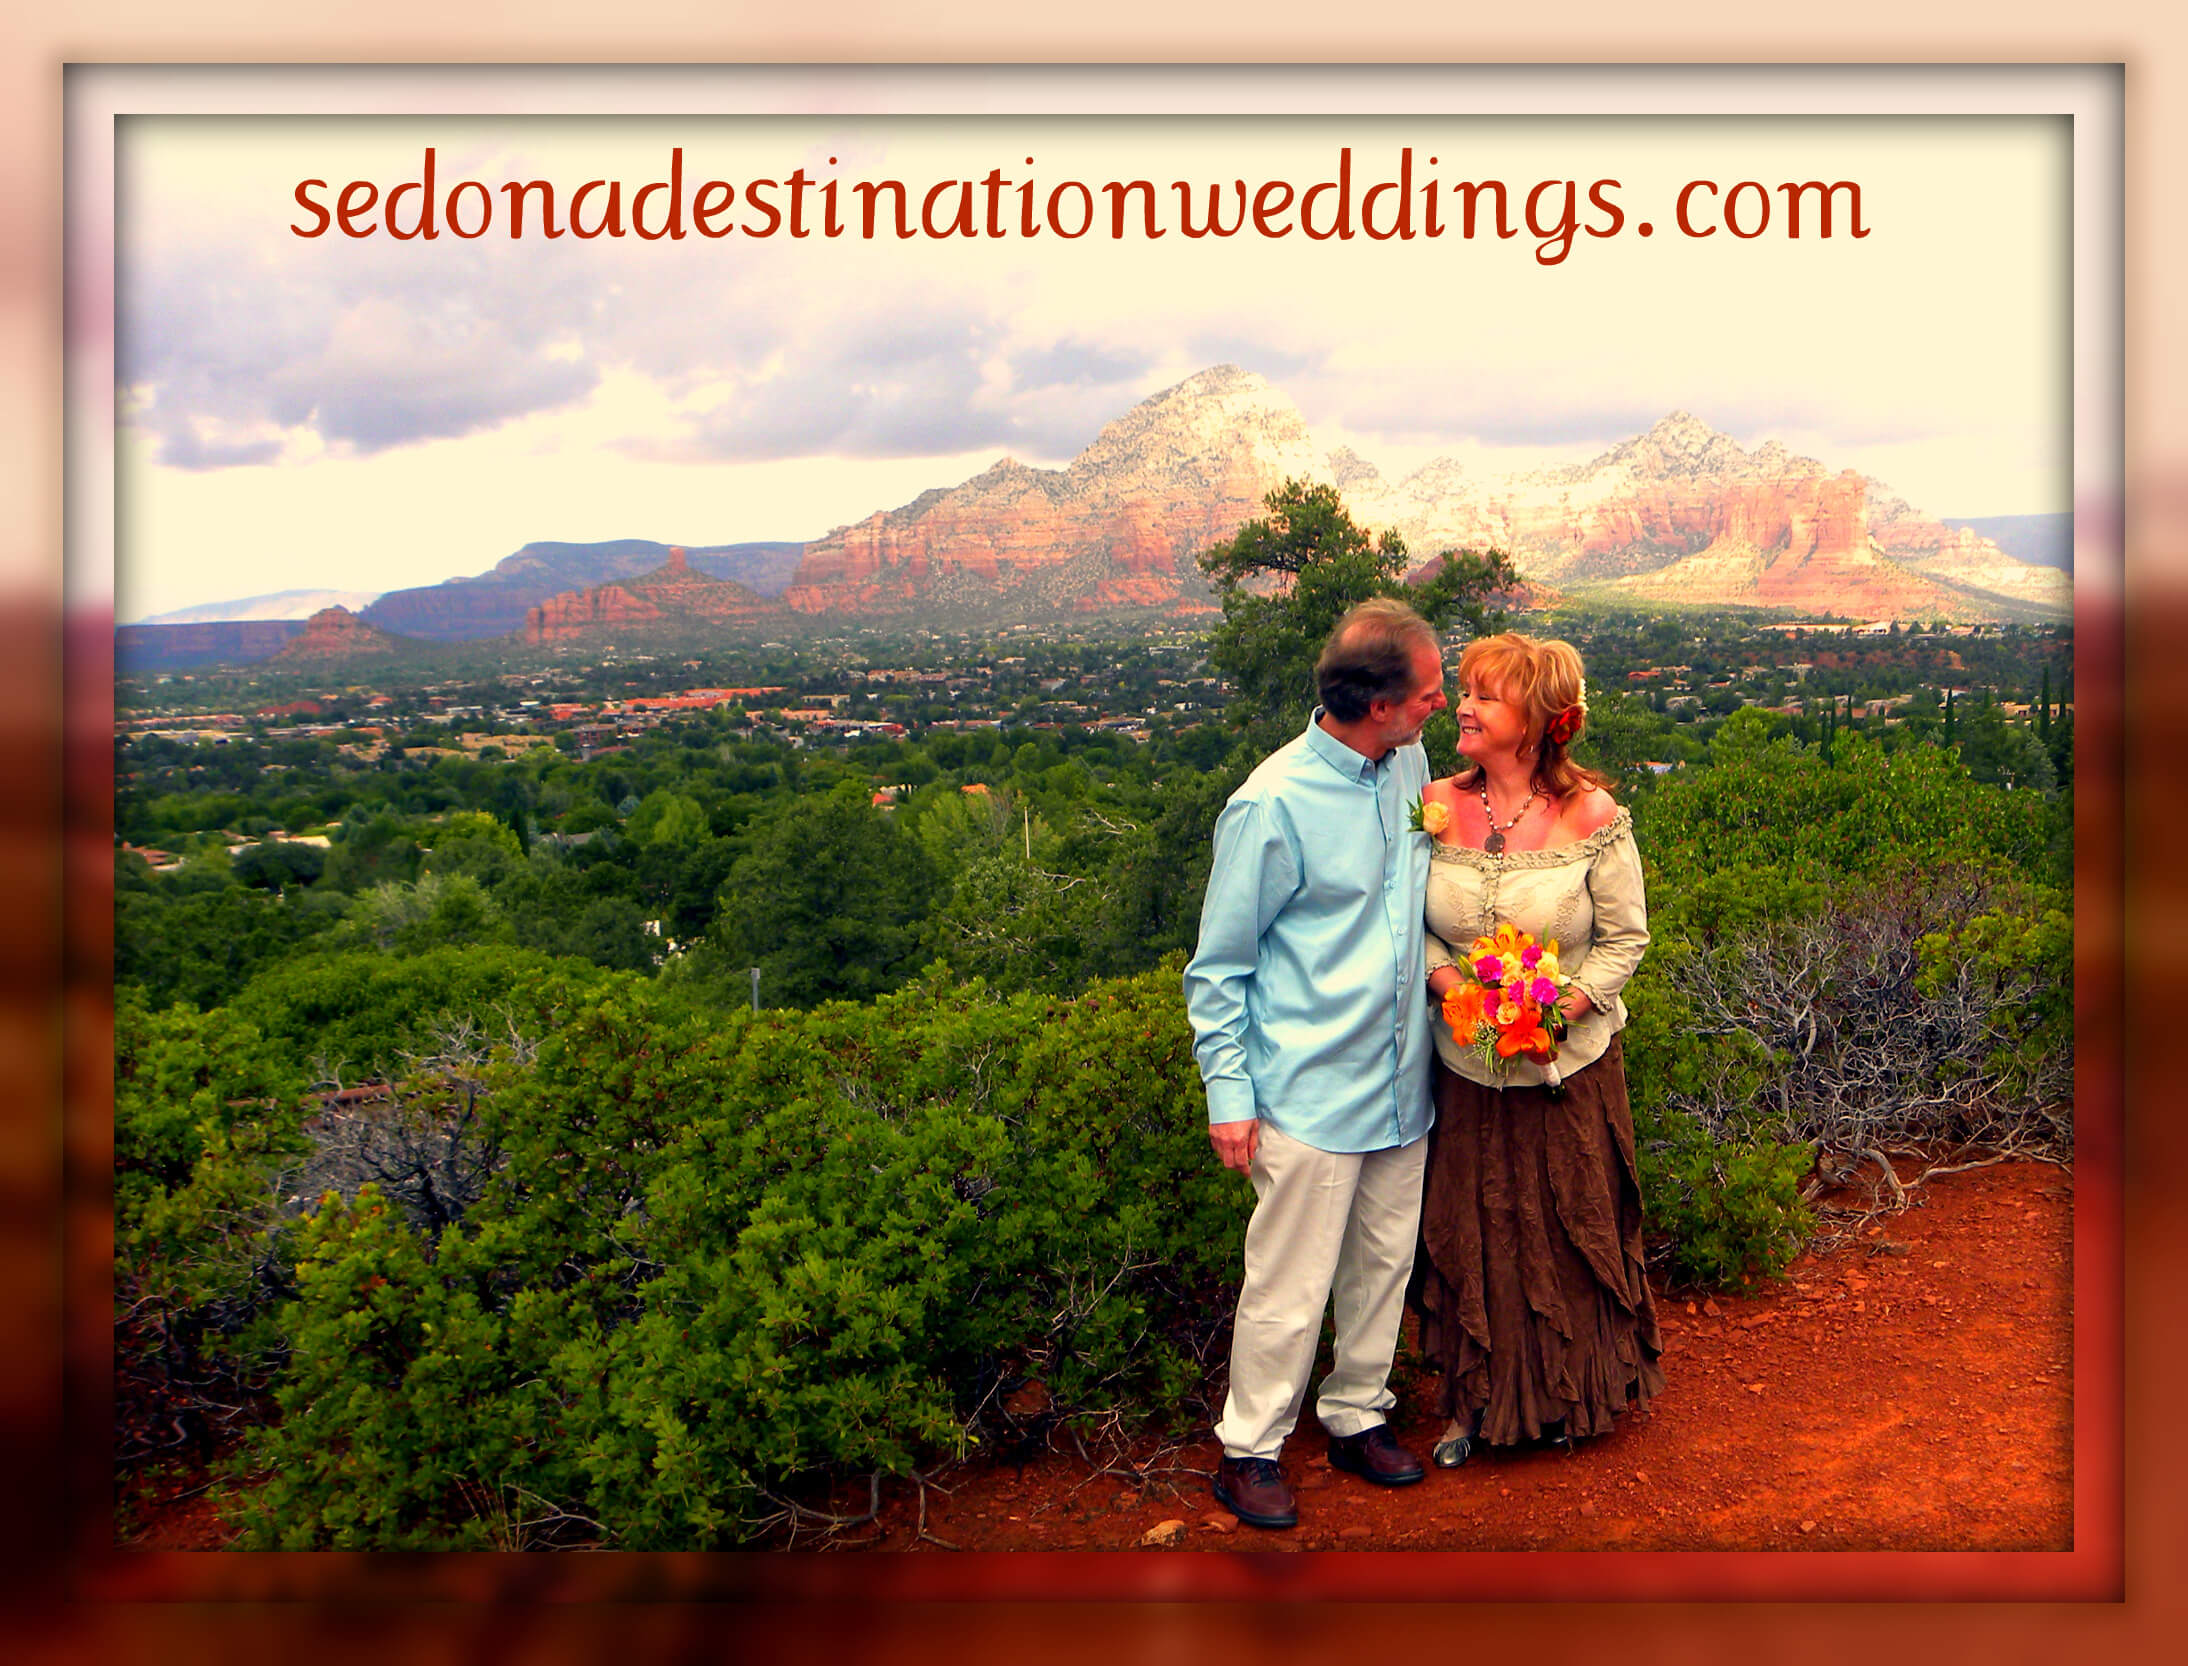 Top 5 Sedona Wedding Sites – Airport Vortex